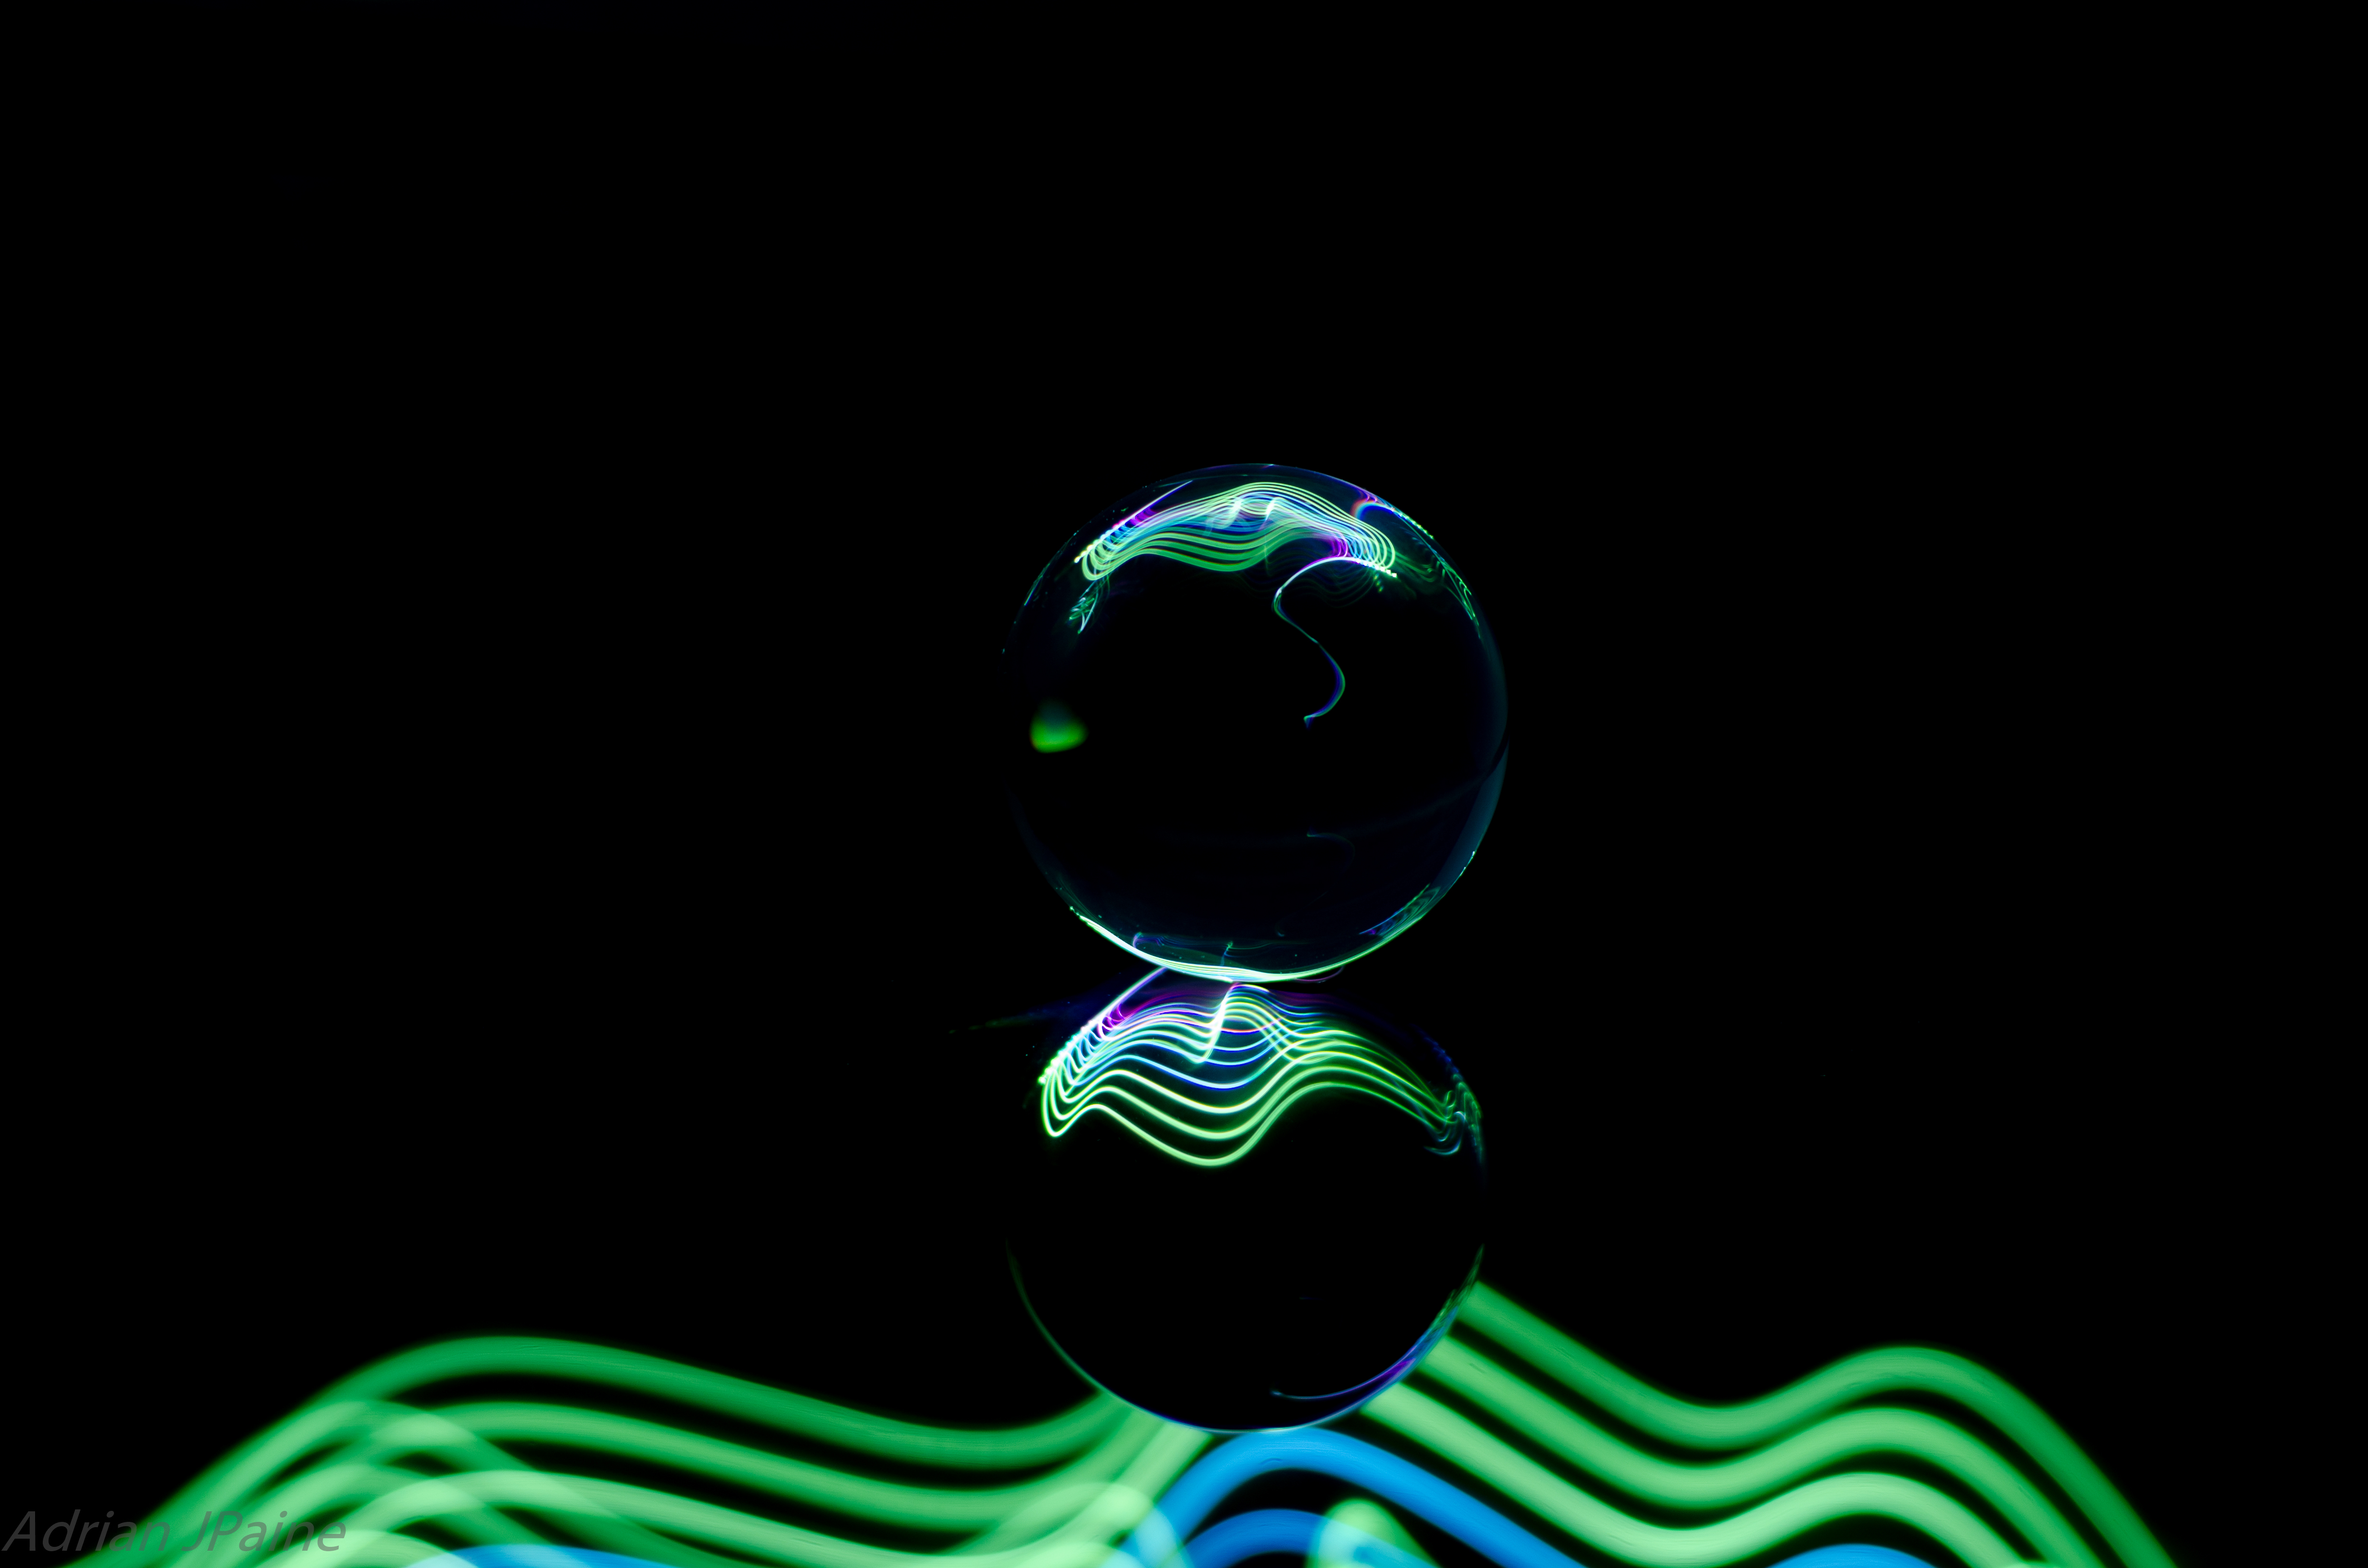 142448 download wallpaper Abstract, Ball, Wavy, Neon screensavers and pictures for free